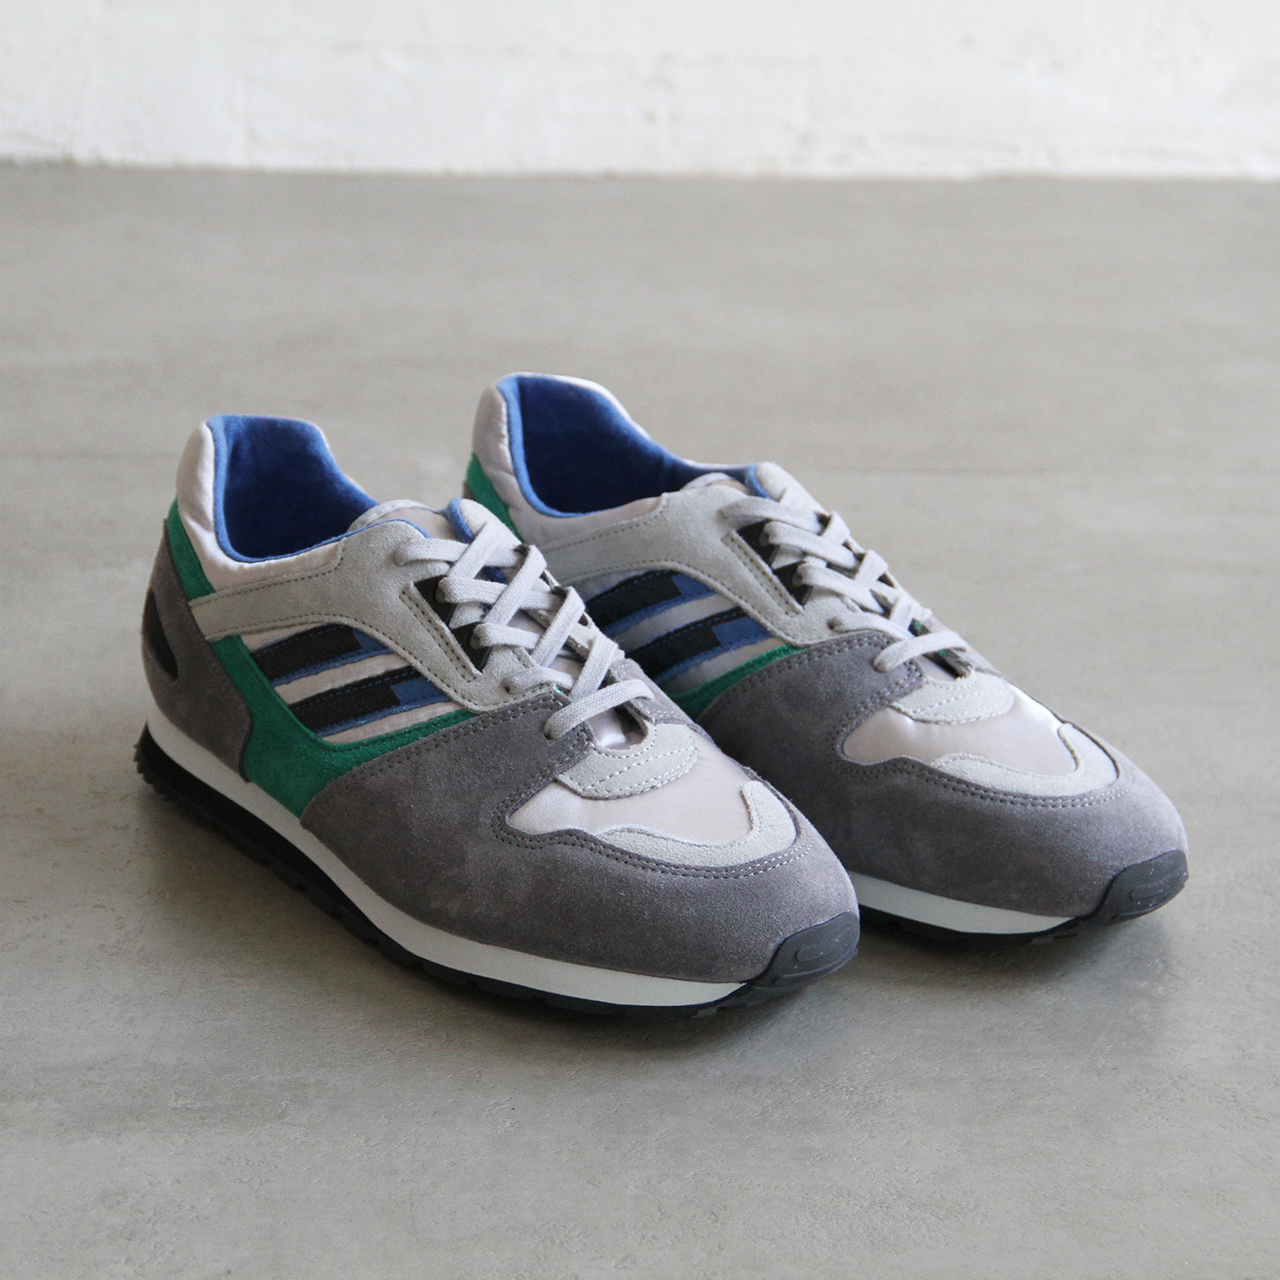 REPRODUCTION OF FOUND【 unisex 】austrian military trainer